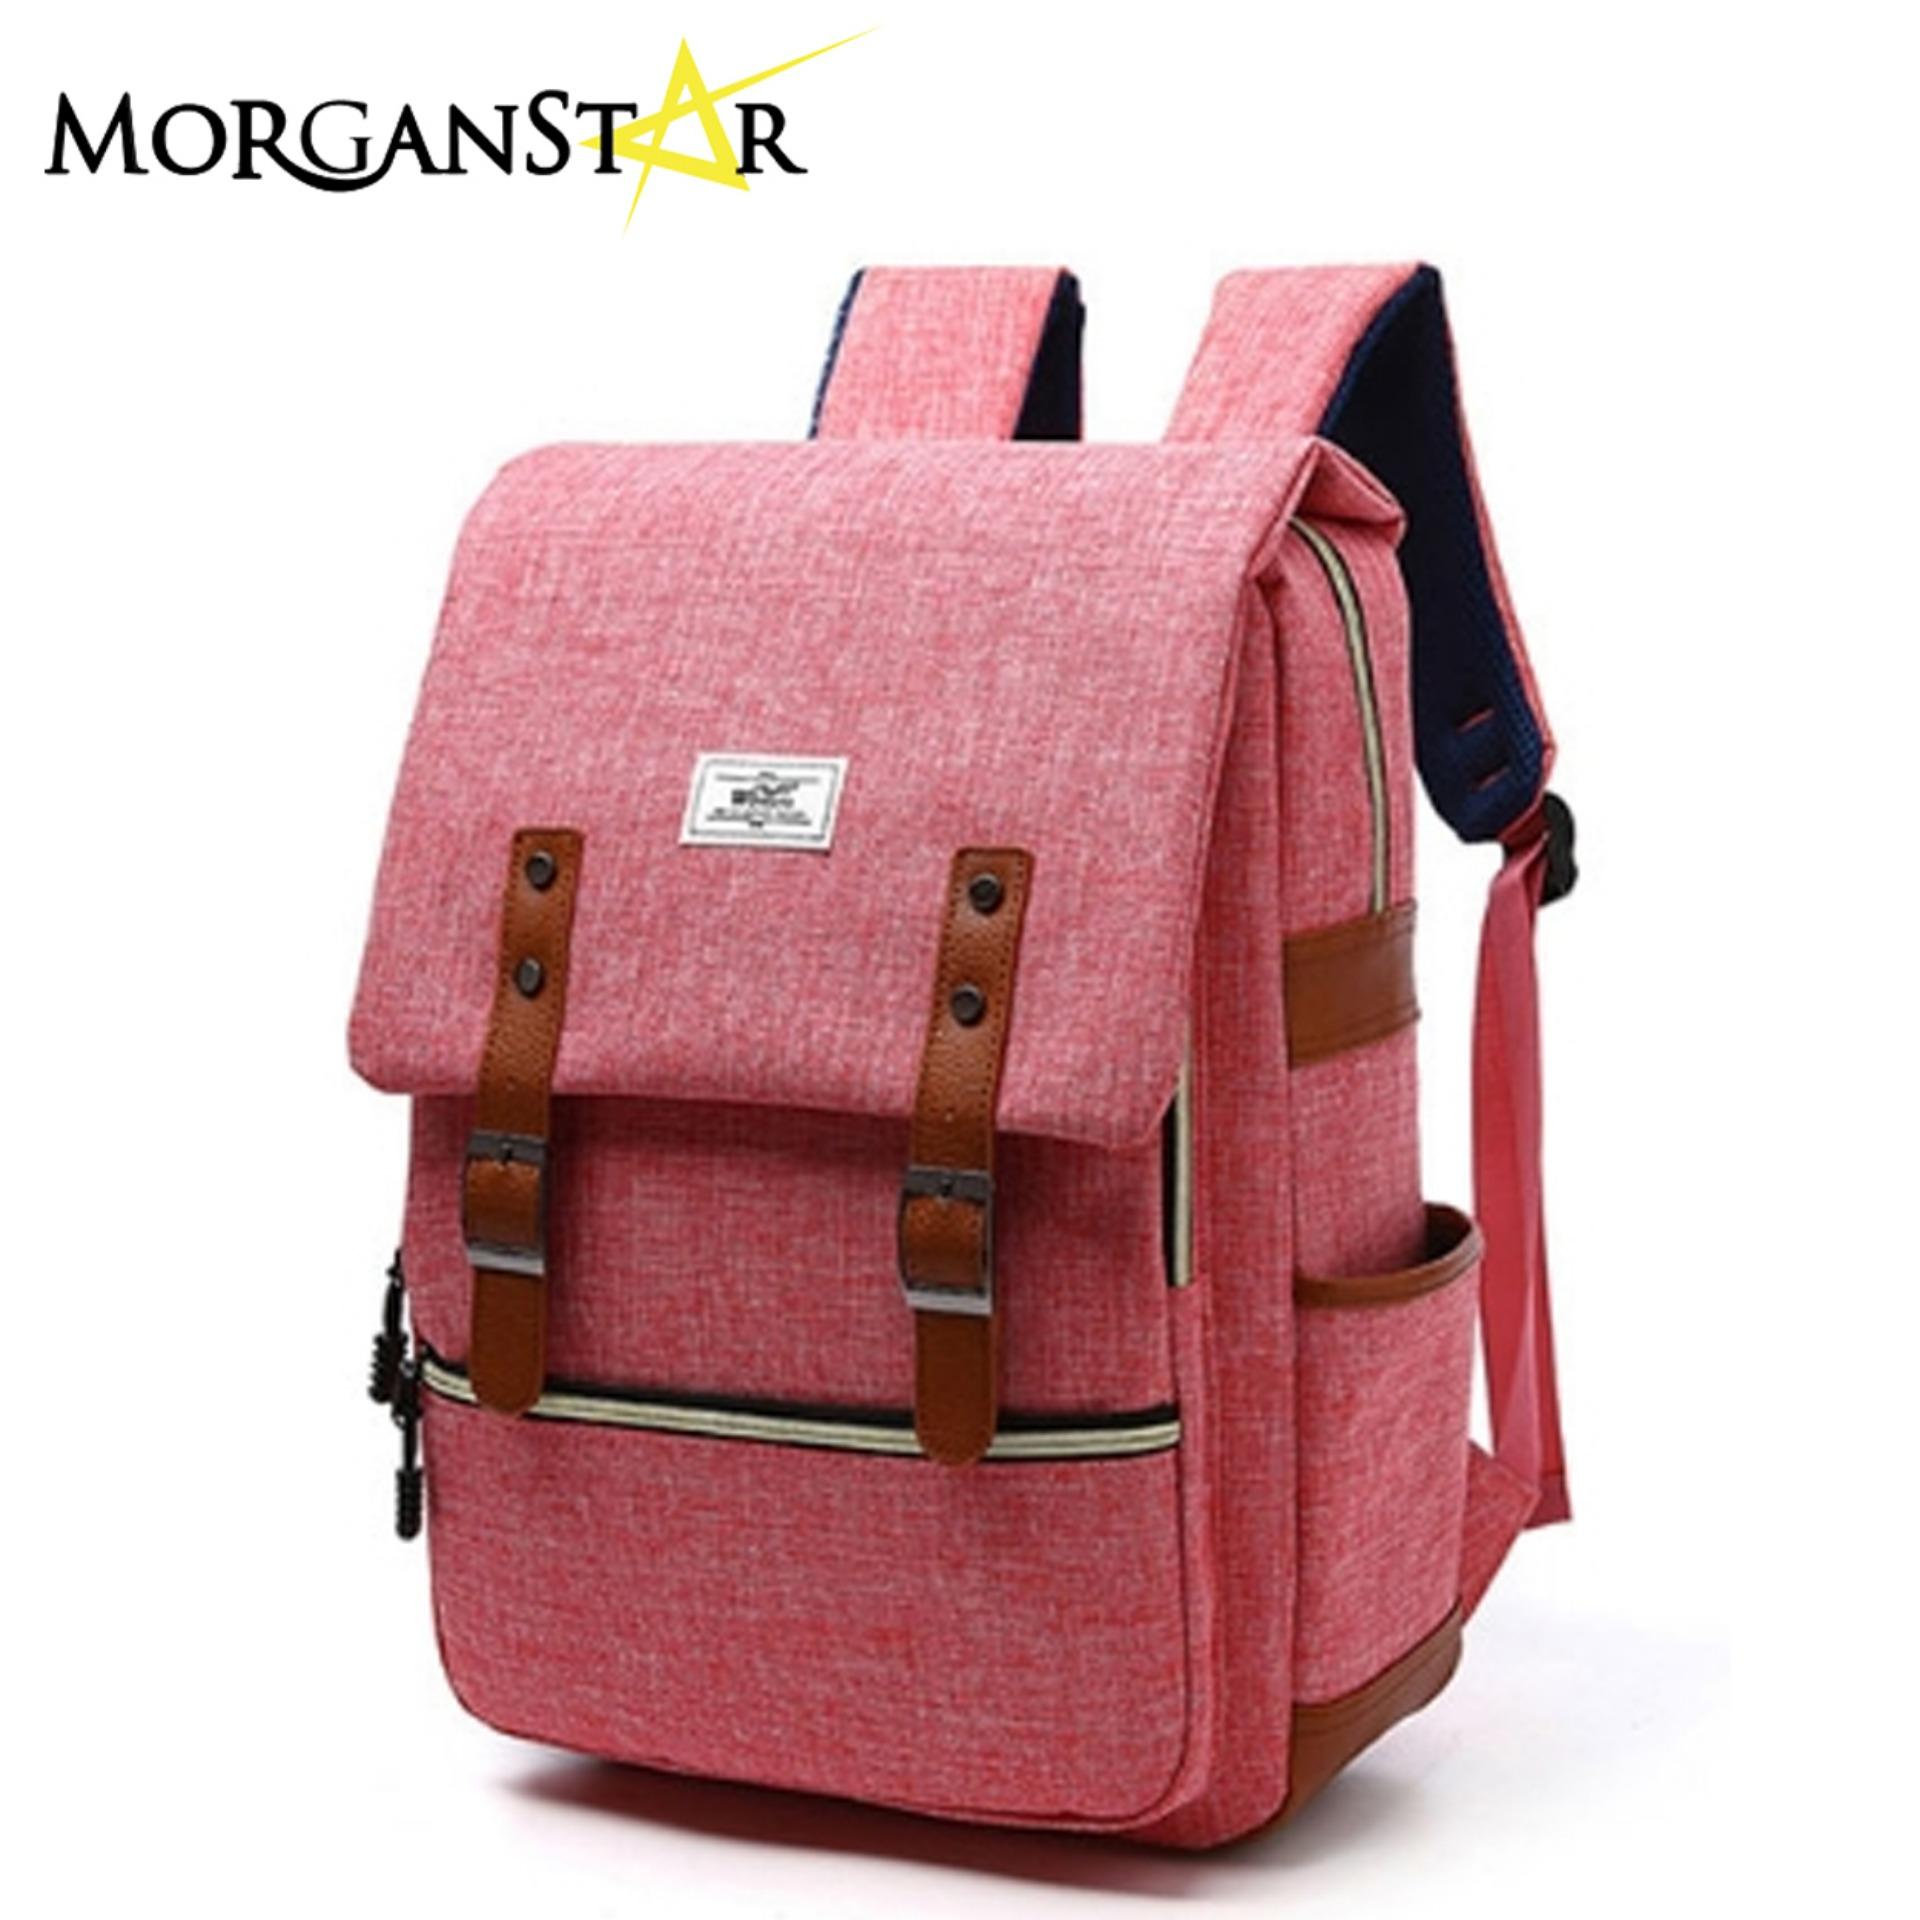 Wowang Unisex Leisure Lightweight Travel Laptop Backpack Men Oxford Cloth Business Backpack (red) By Morganstar Marketing.